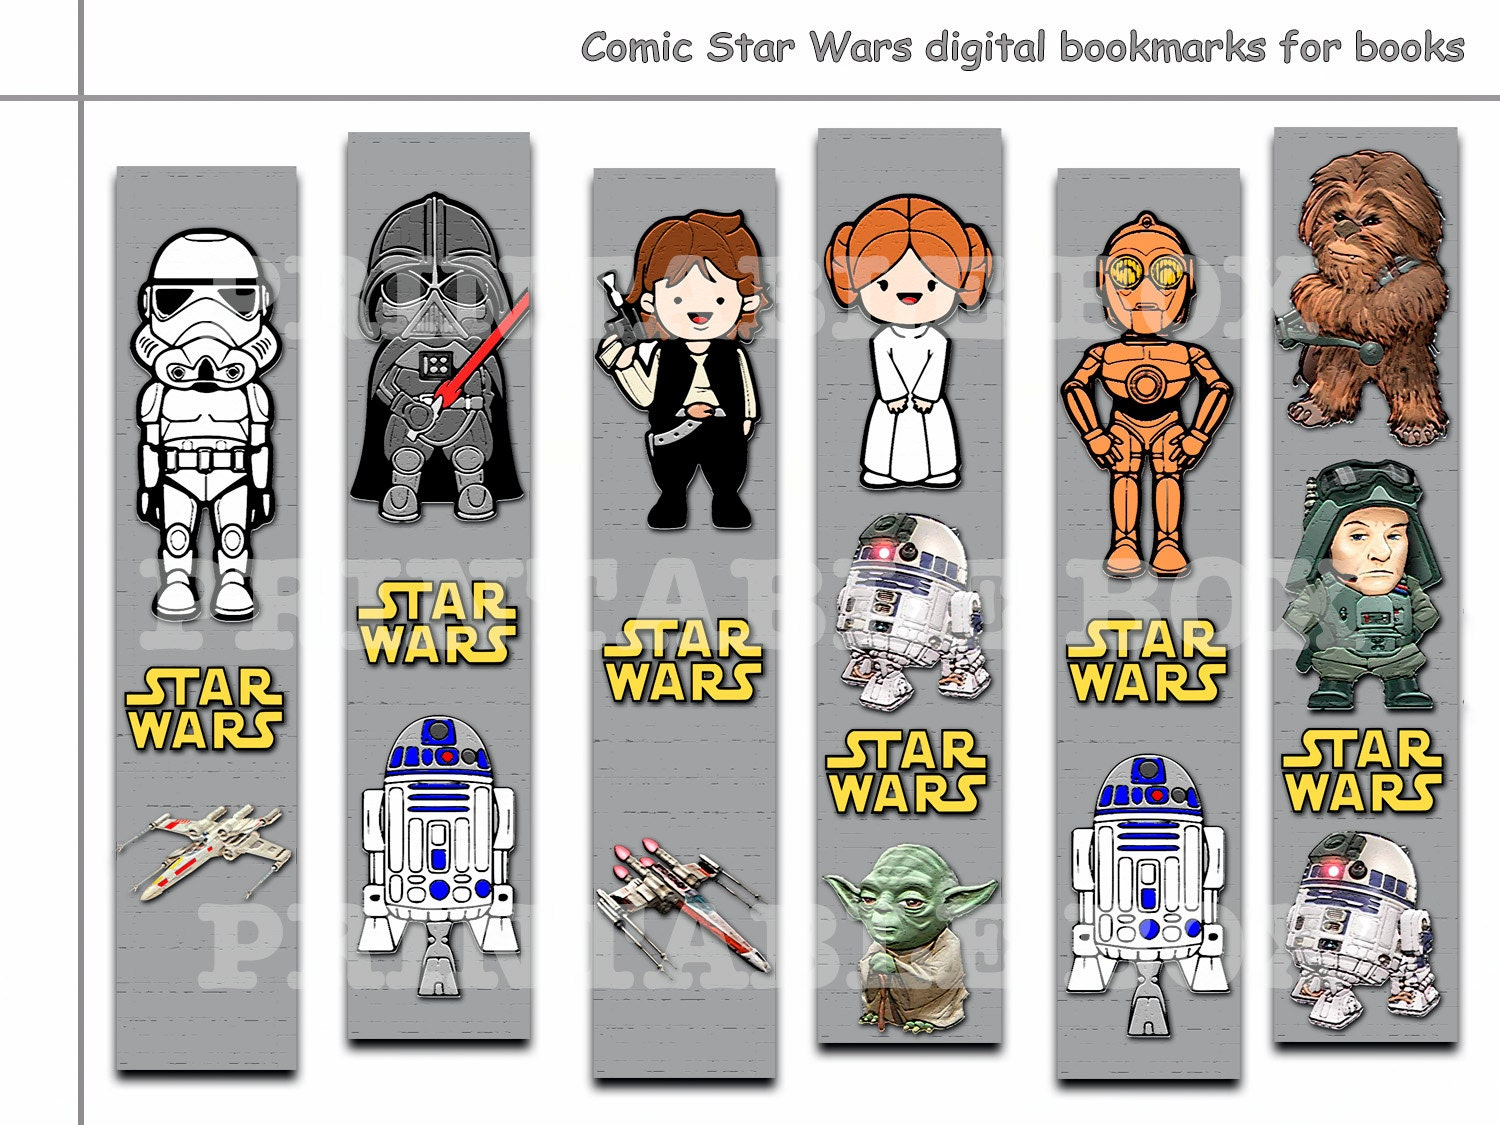 image about Star Wars Bookmarks Printable named Appealing Electronic Comedian Star Wars bookmarks for e-book, Printable bookmark, guide equipment, paper bookmarks, Comedian Star Wars